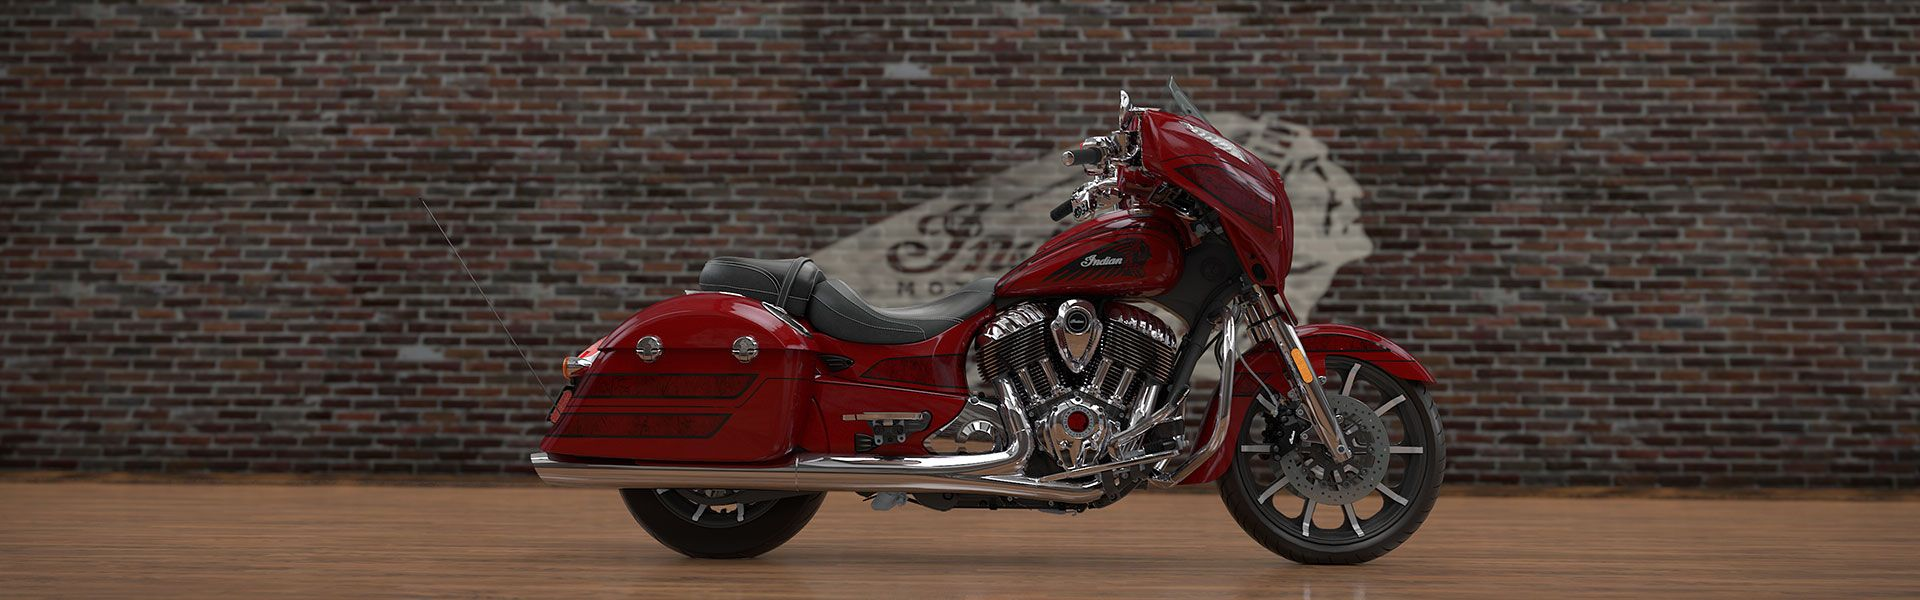 cruisers-indian-chieftain-elite